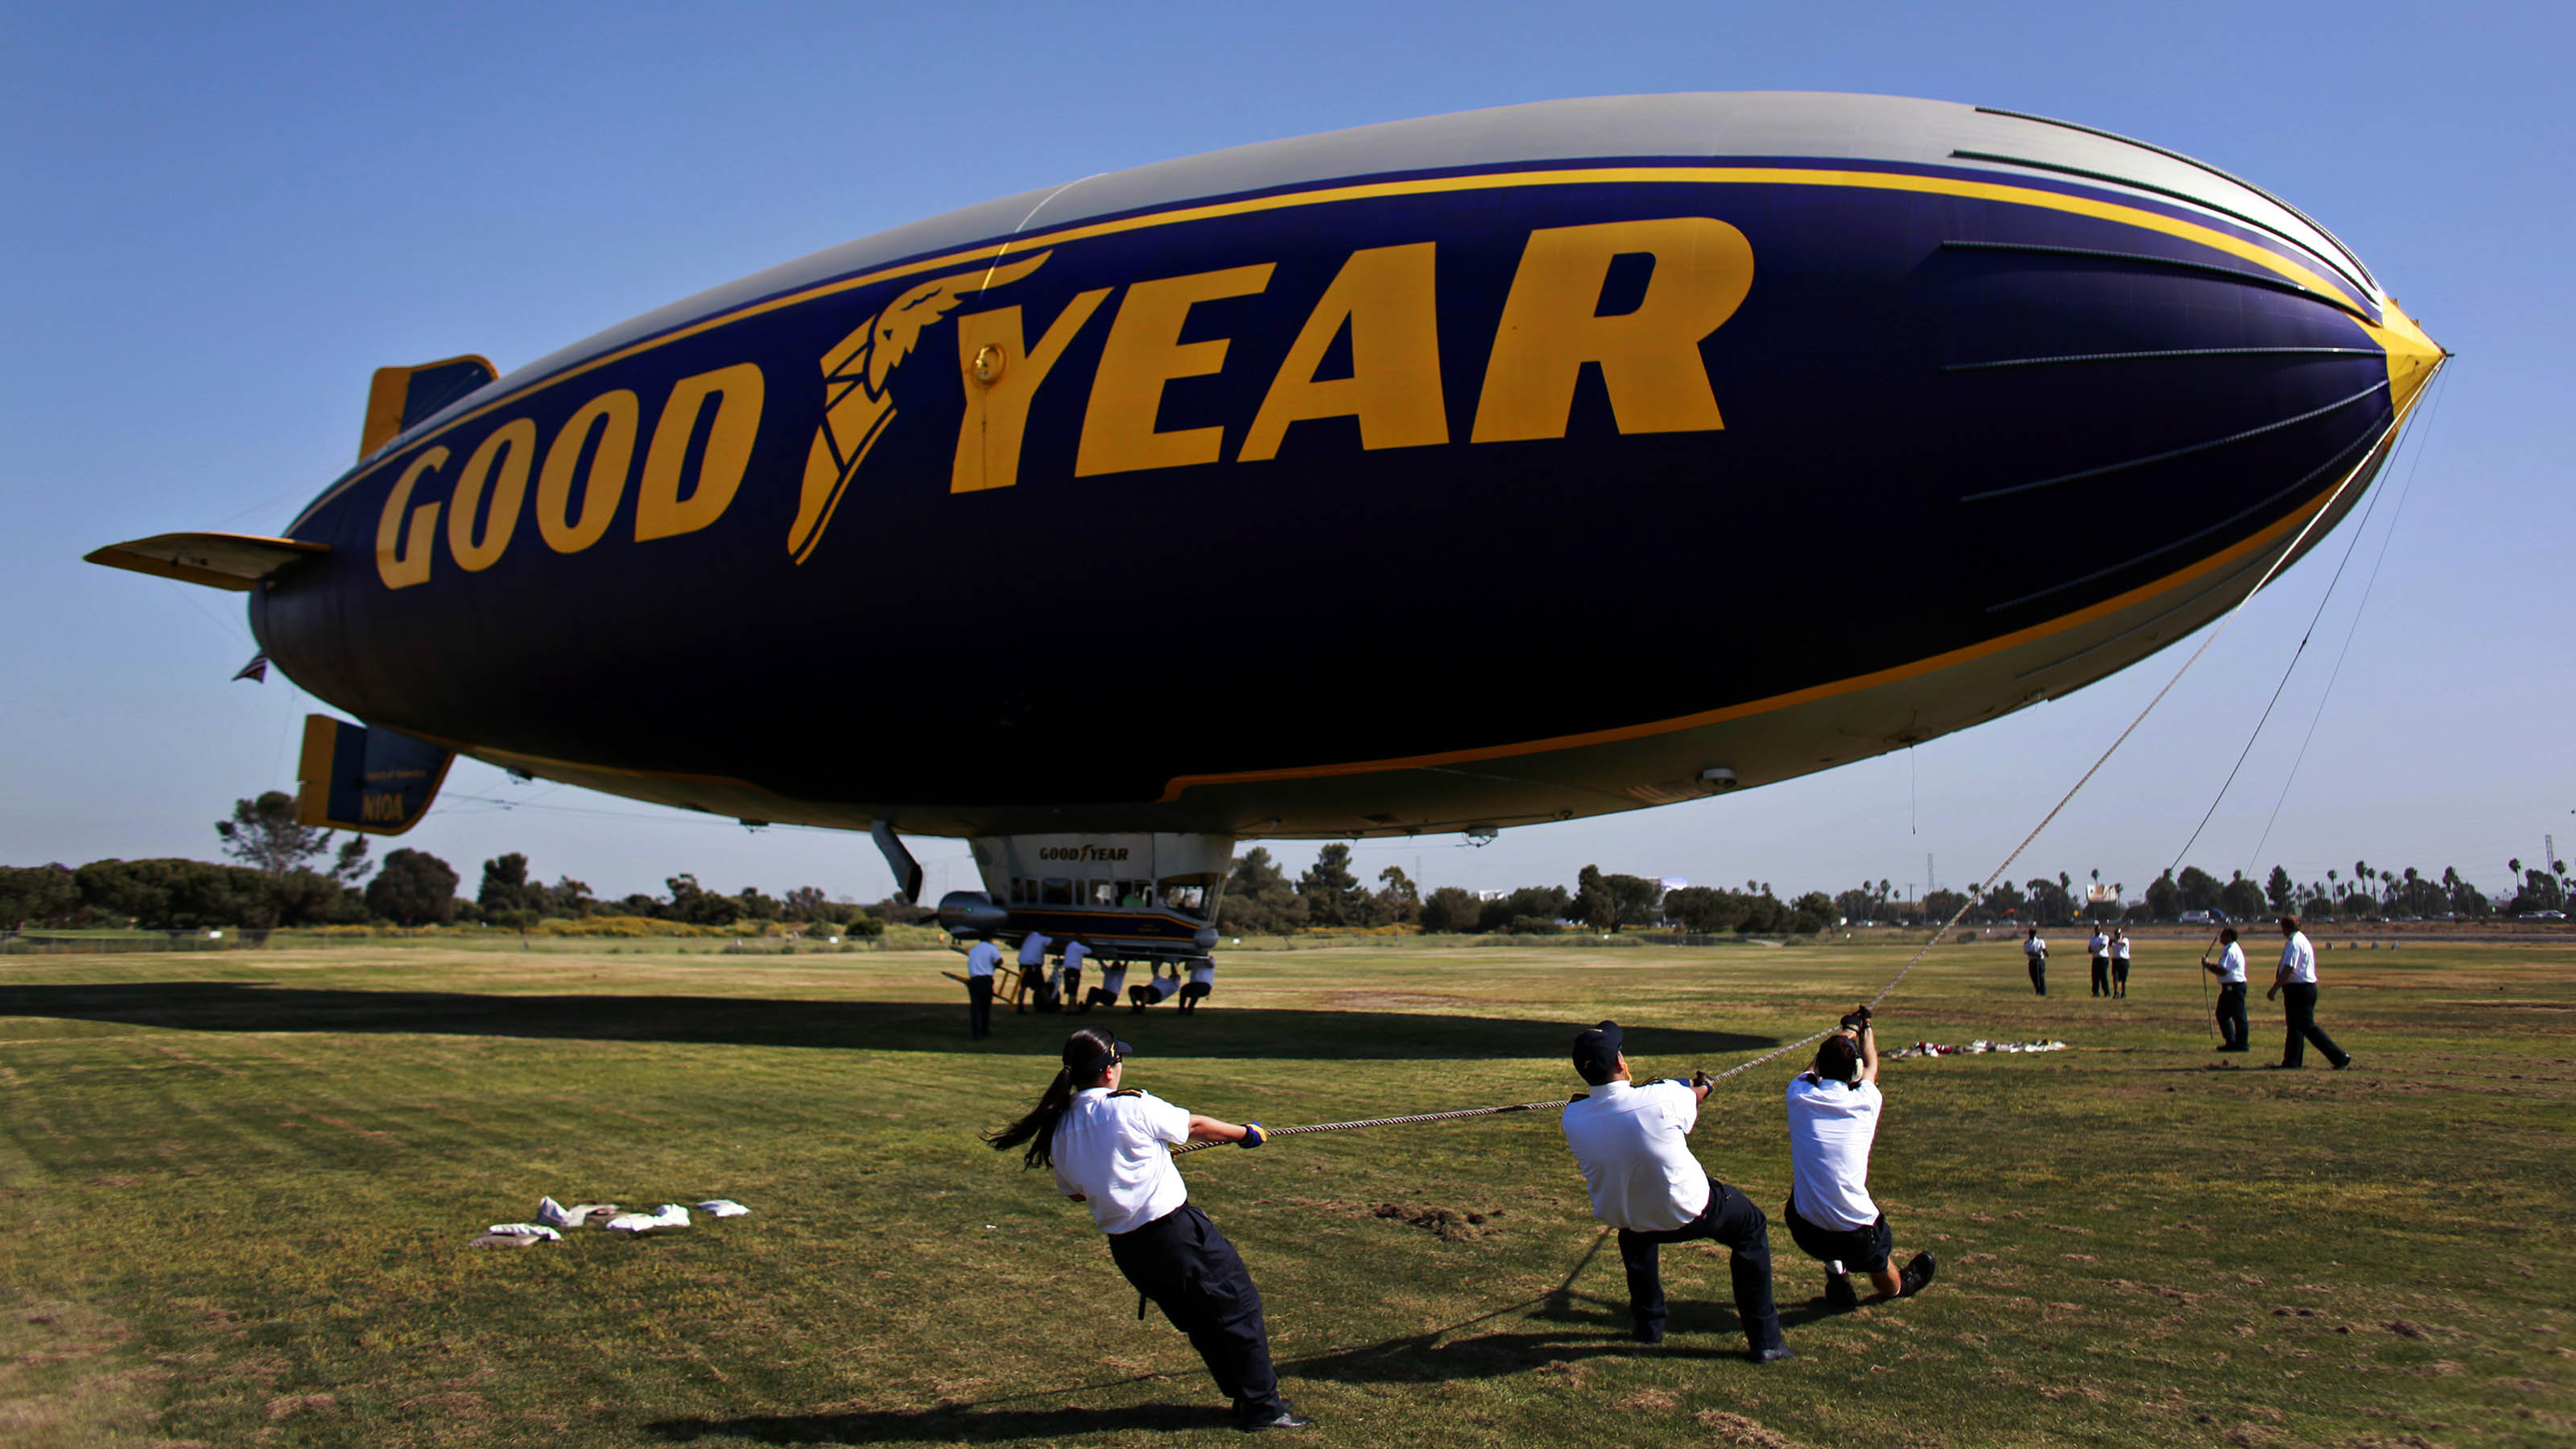 Goodyear Inflating Size Of Signature Blimps The Blade